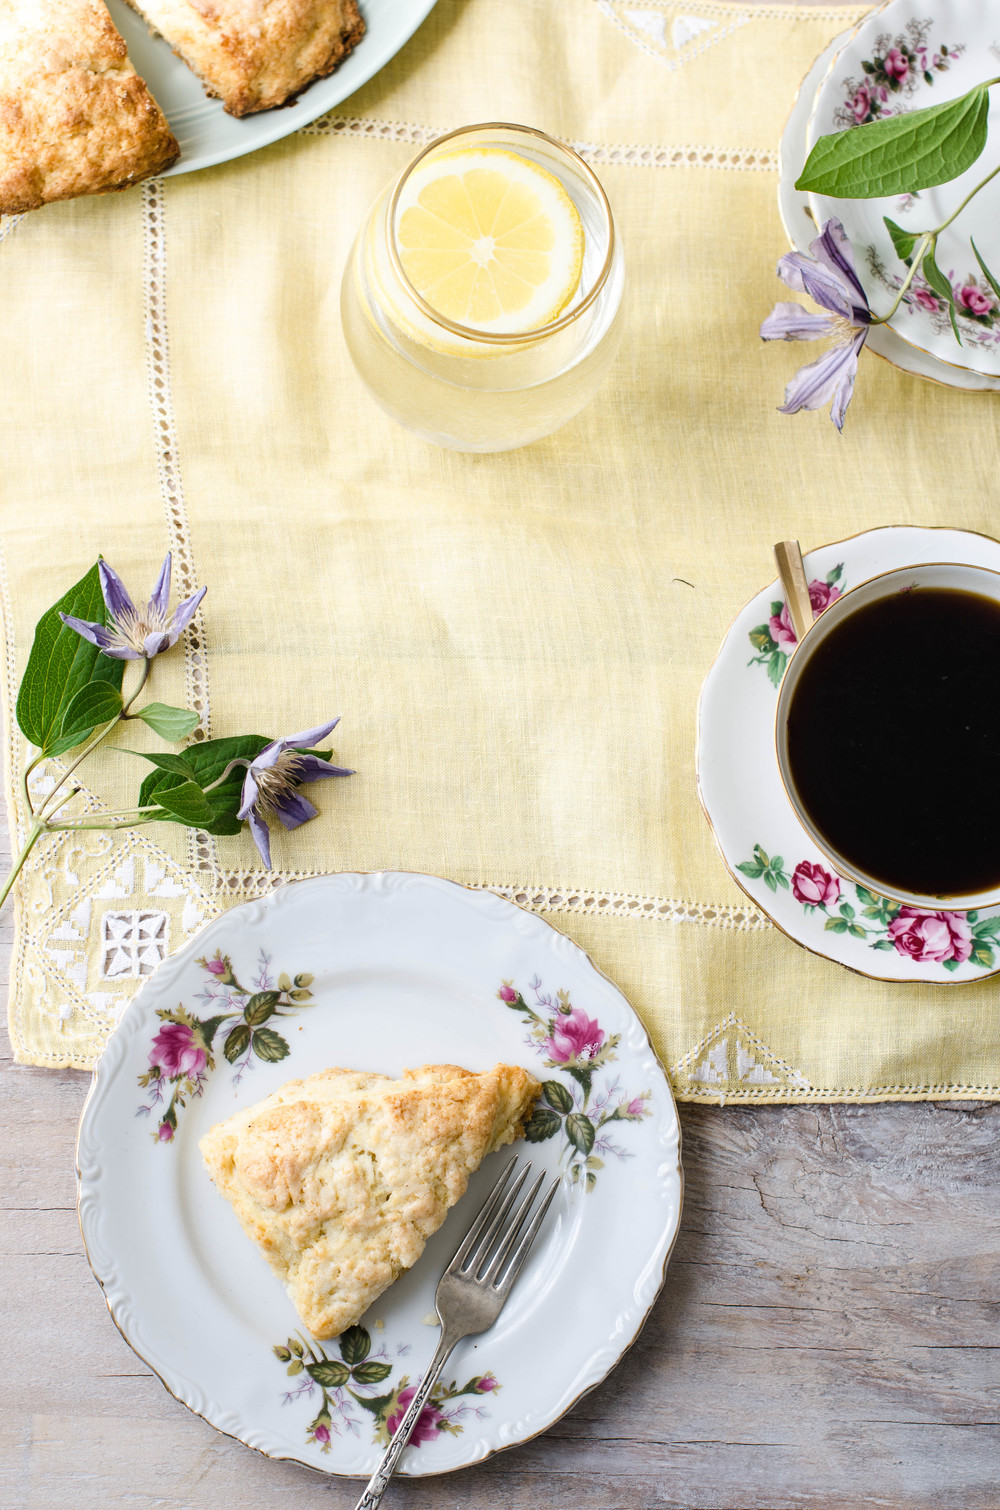 rose & ivy journal sugared lemon scones